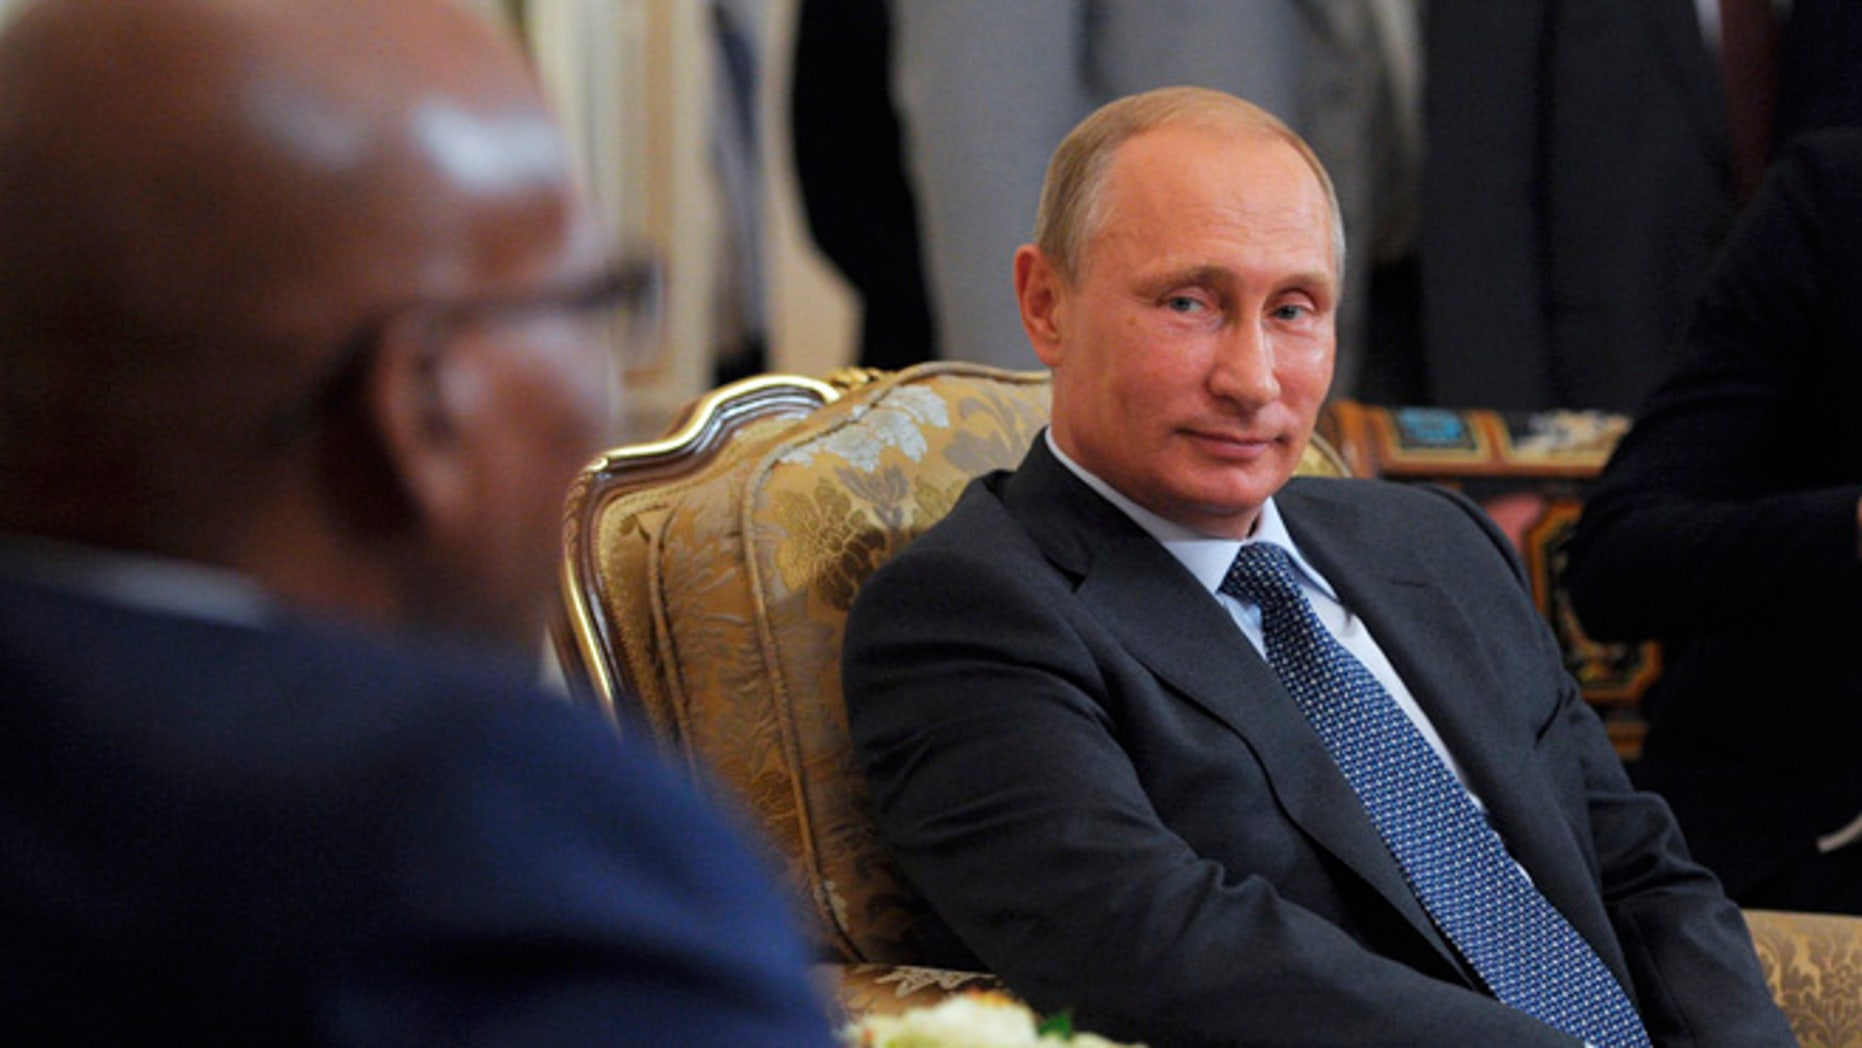 Aug 28, 2014: Russian President Vladimir Putin, right, meets with South African President Jacob Zuma in the Novo-Ogaryovo residence outside Moscow, Russia. (AP)